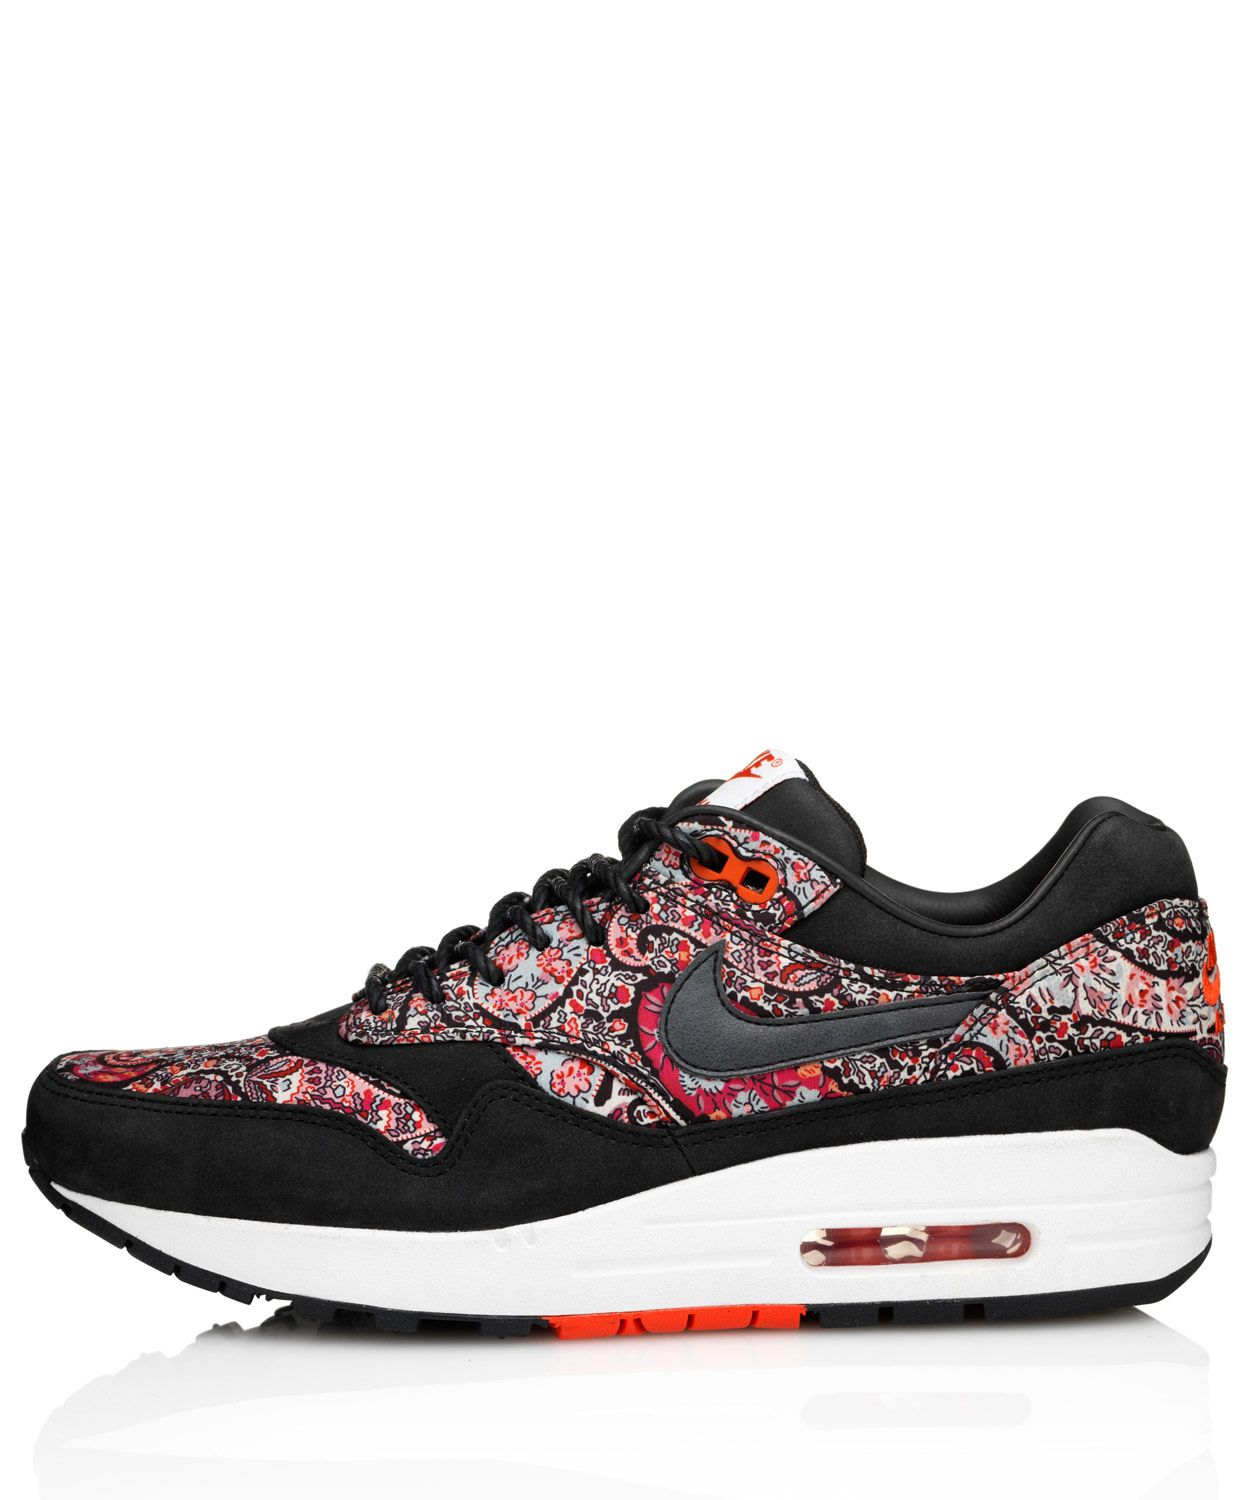 designer fashion 83865 5eb2b Nike X Liberty Black Bourton Liberty Print Air Max 1 Trainers. Available in  sizes 3 - 9 at Liberty.co.uk